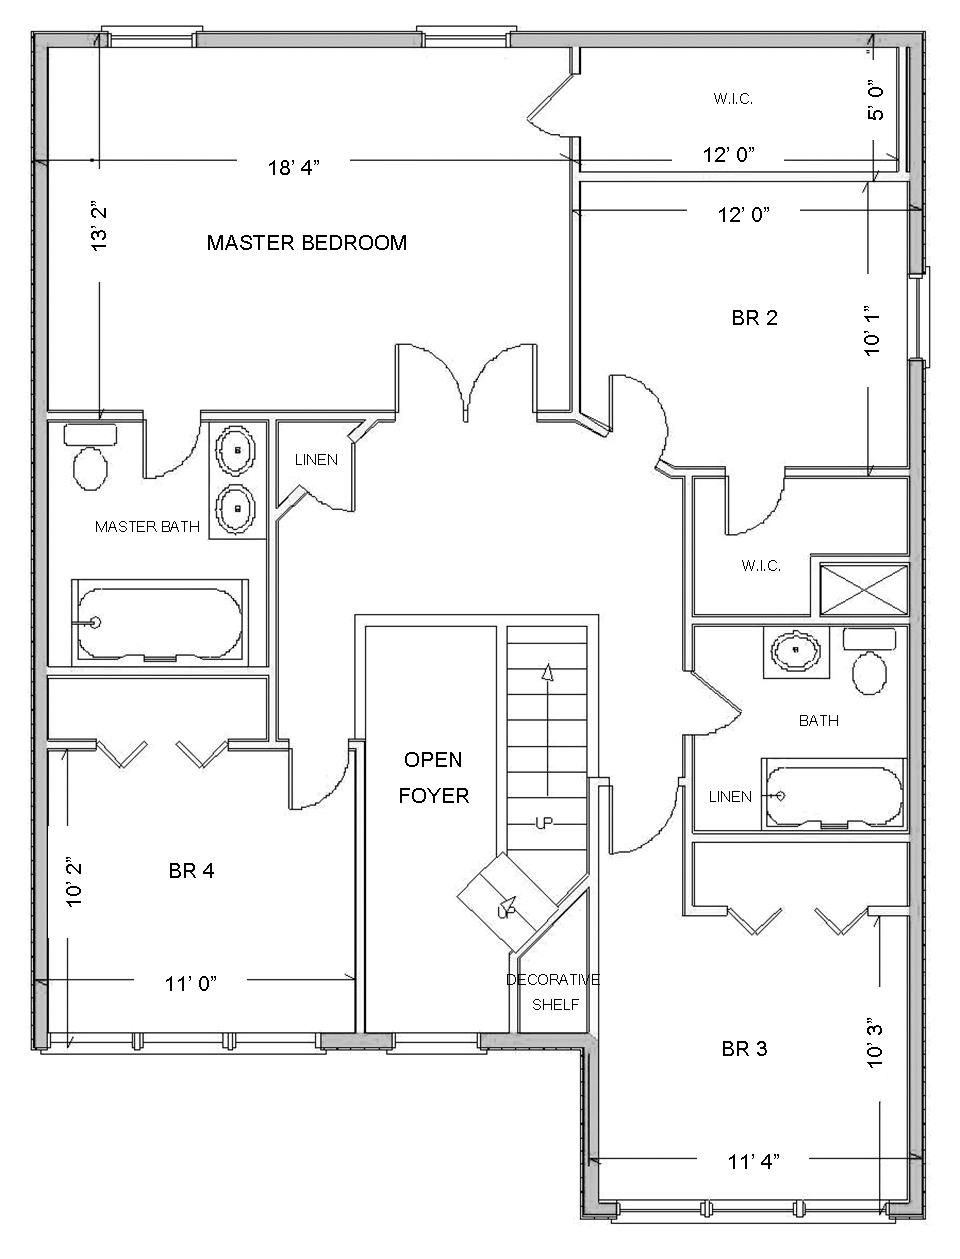 Easy House Plan software Best Of Digital Smart Draw Floor Plan with Smartdraw software with